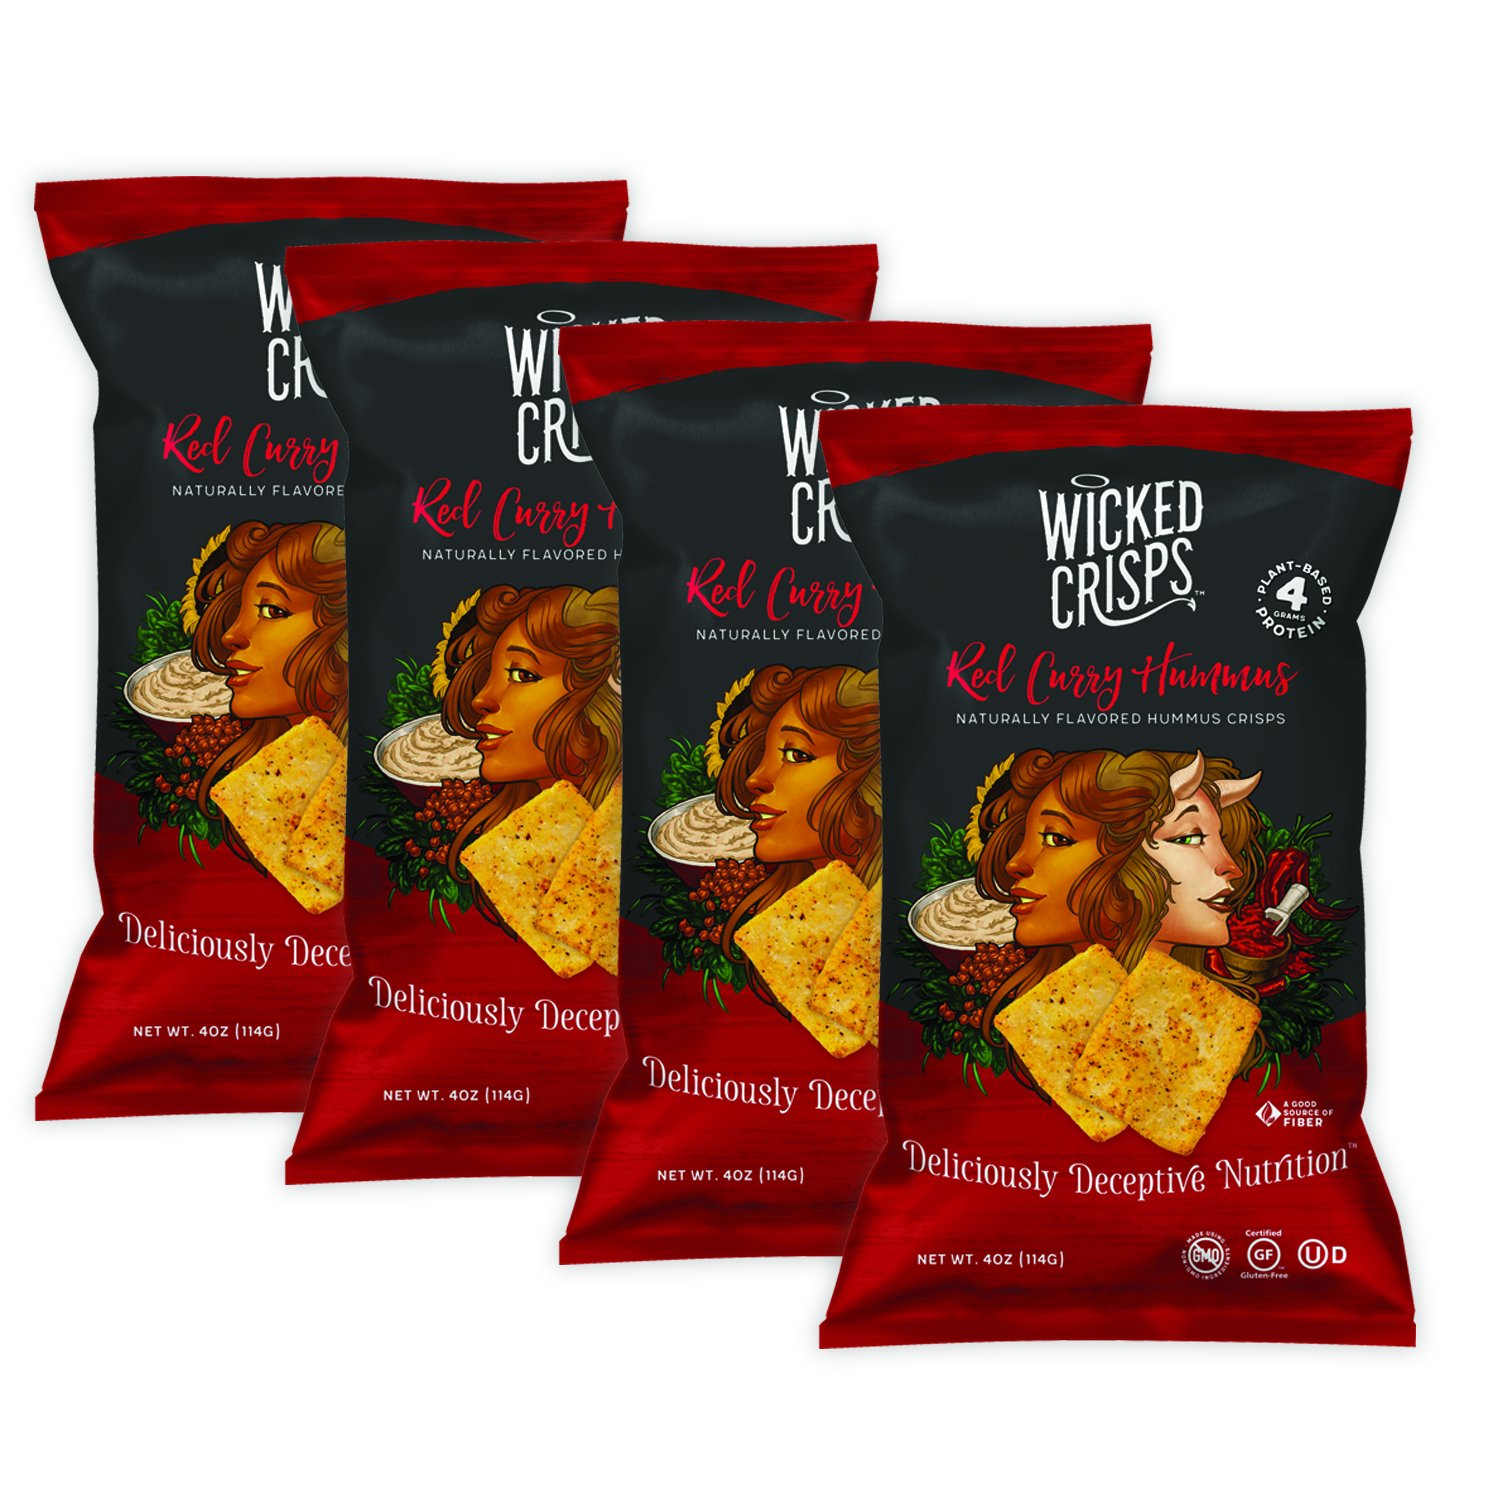 Wicked Crisps, Red Curry Hummus, Deliciously Deceptive Nutrition, Gourmet Hummus Crisps, No Additives or Preservatives, Gluten Free, Non-GMO, 4oz party-size bag (4 pack)